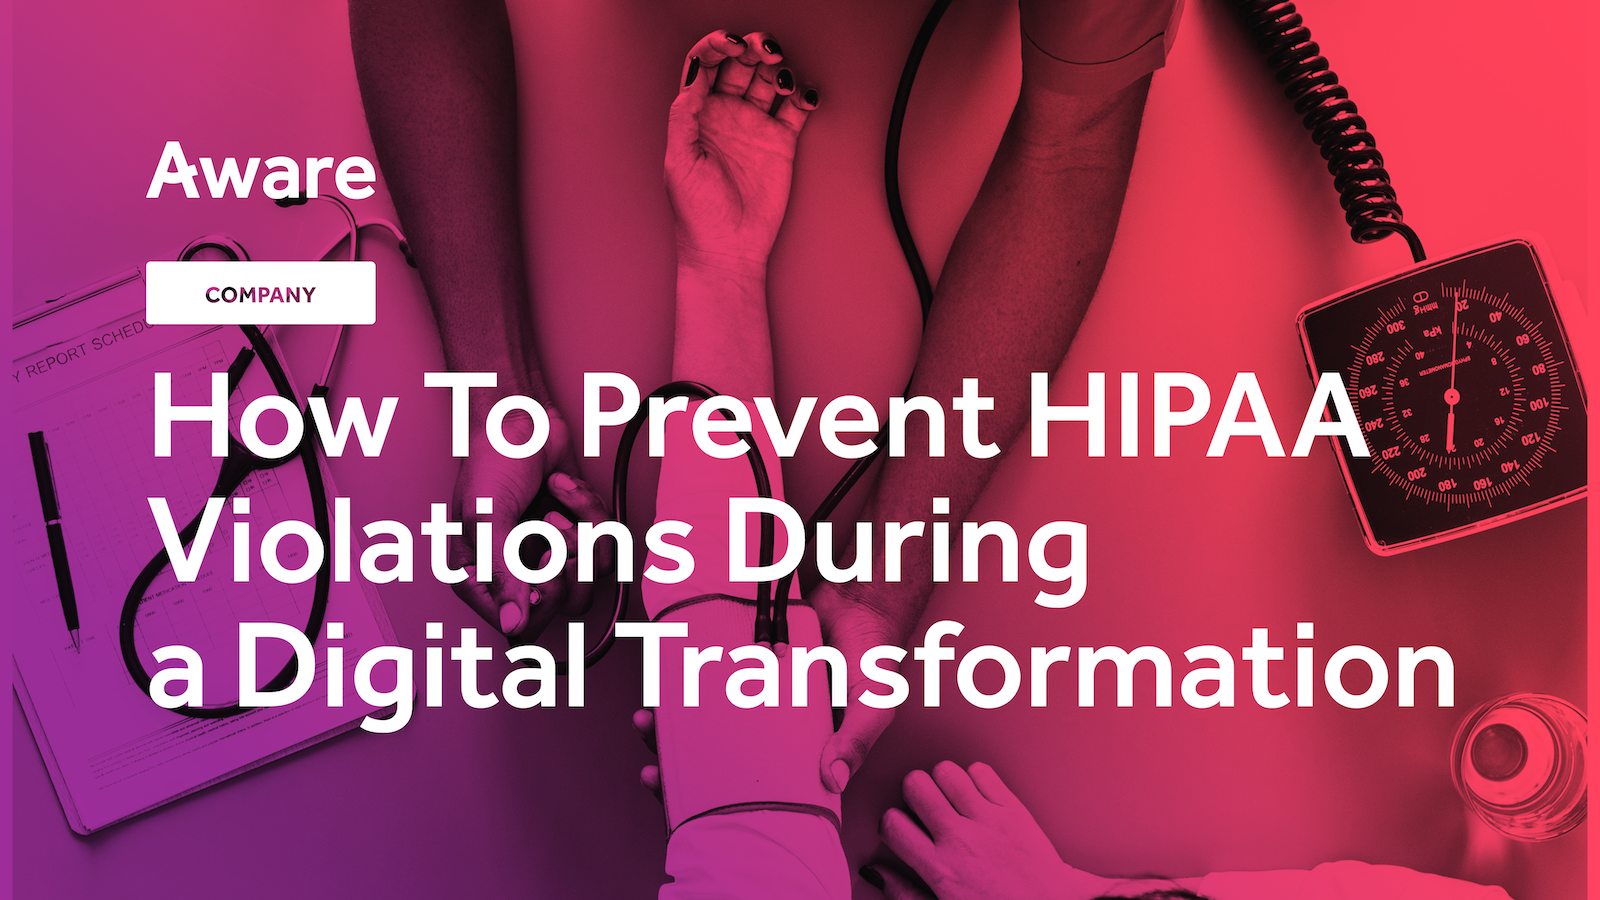 HIPAA Compliance & Enterprise Collaboration: What You Need to Know